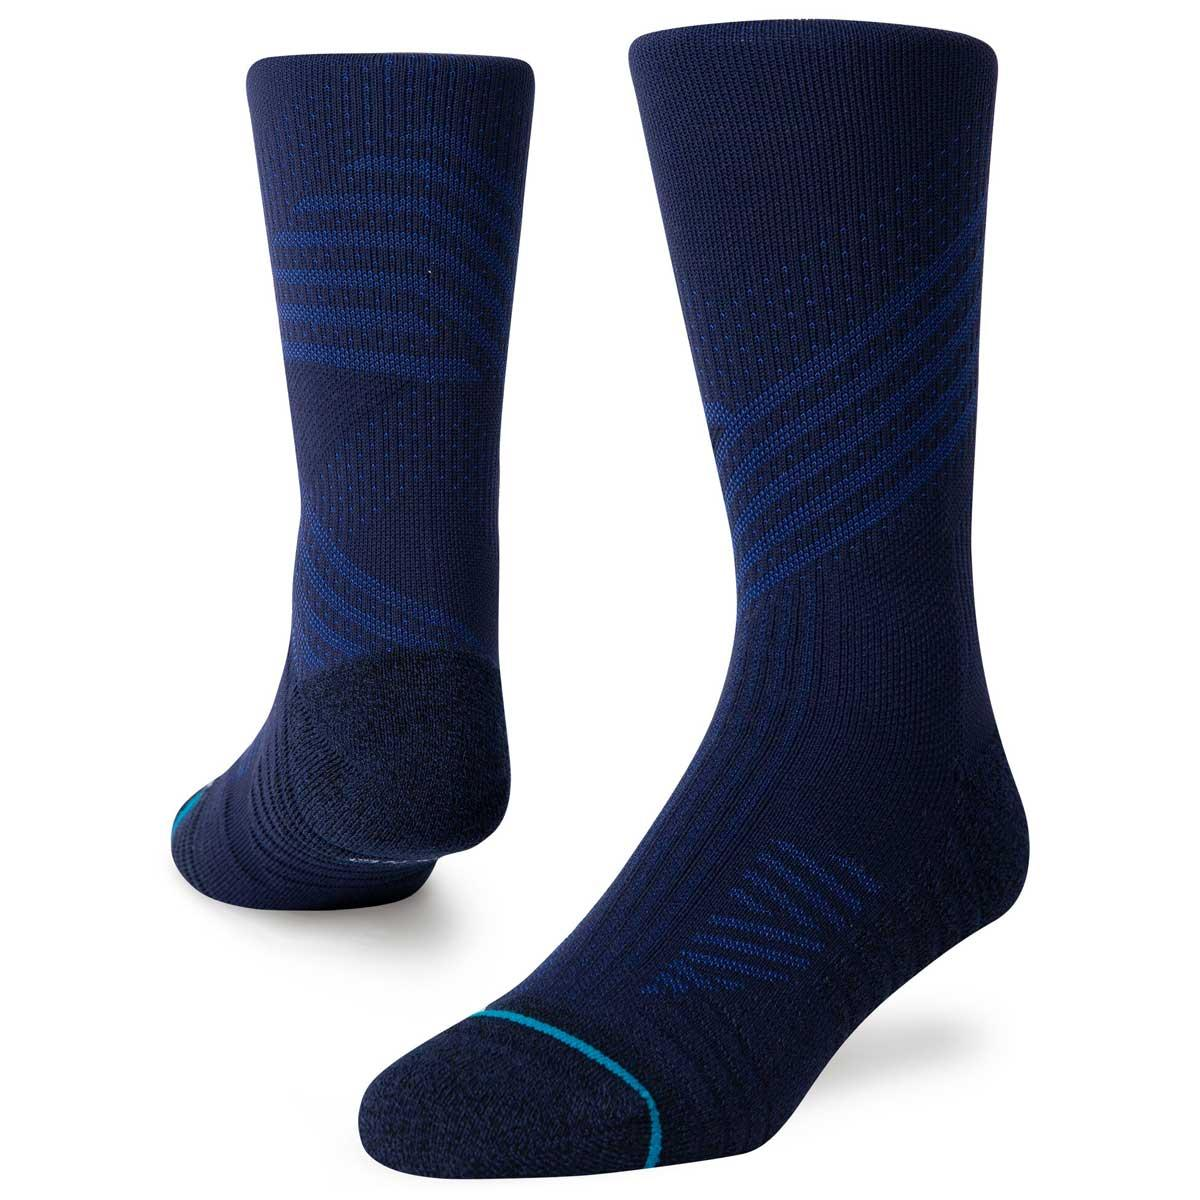 Stance Athletic Crew ST Sock in Navy